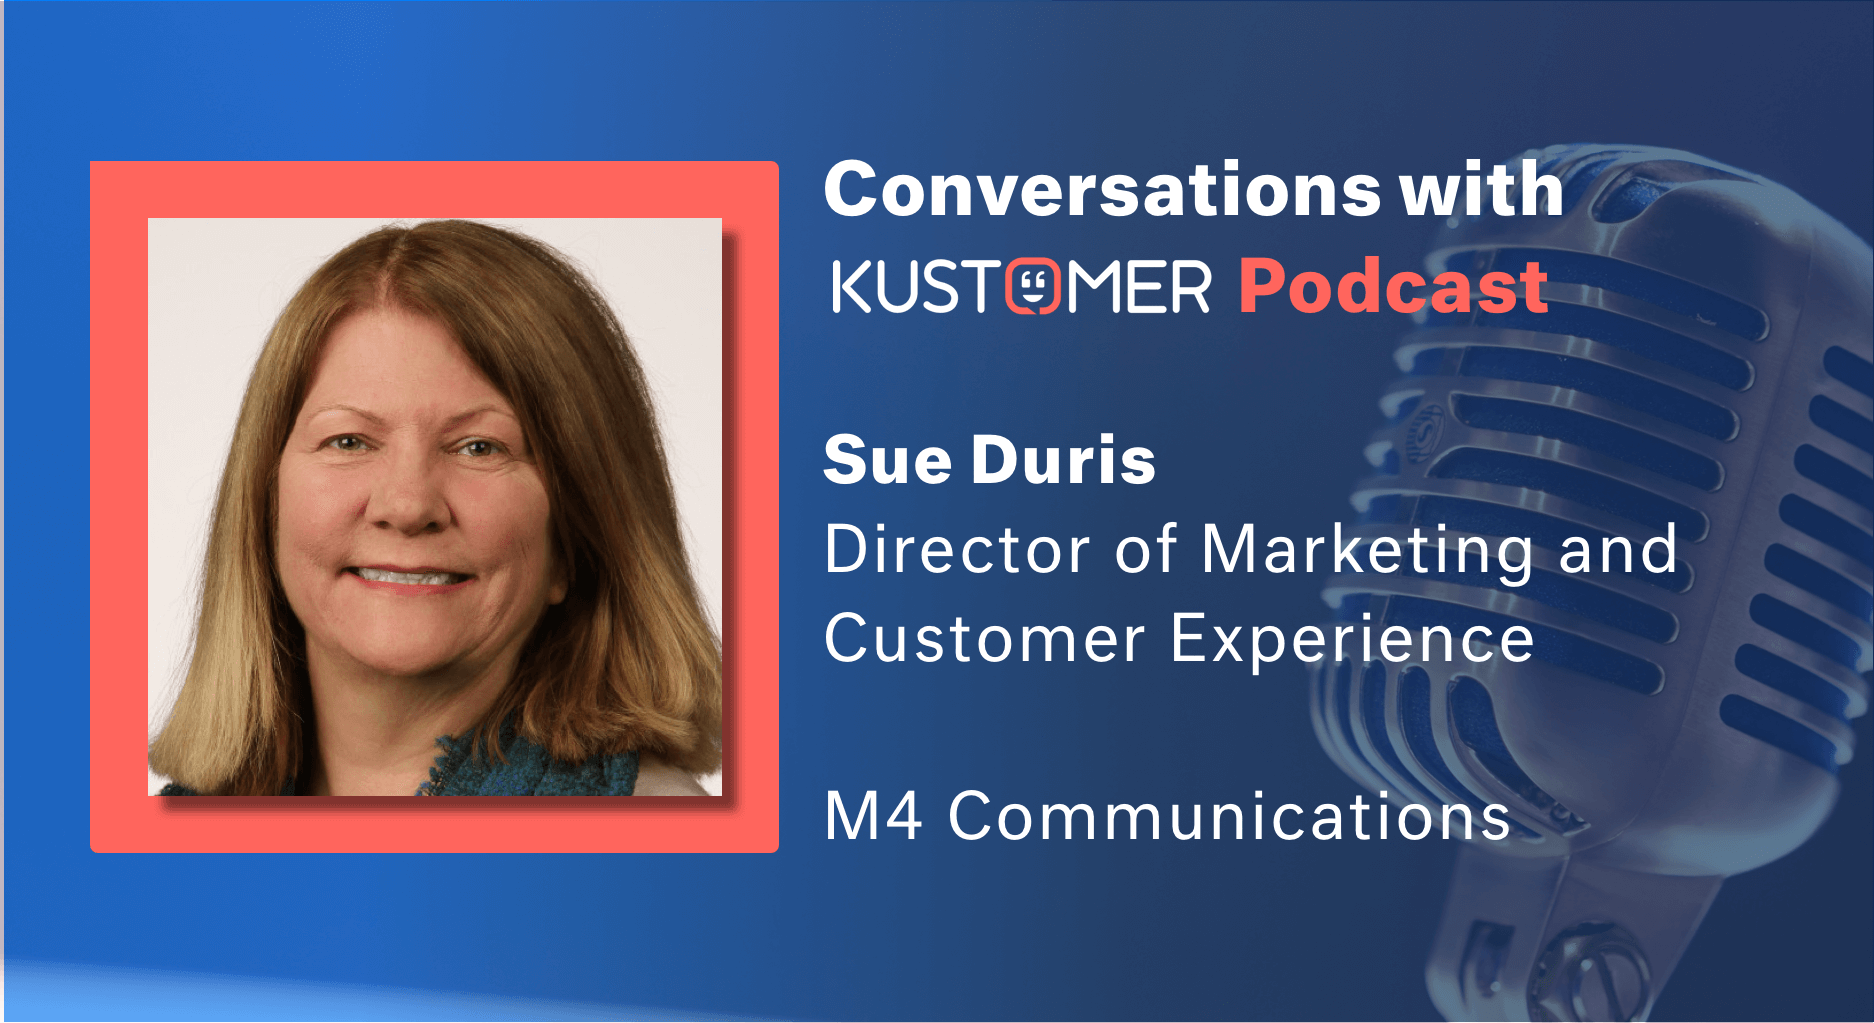 Conversations with Kustomer Podcast: How can Marketing and Customer Support Create a Consistent Experience? Featuring Sue Duris